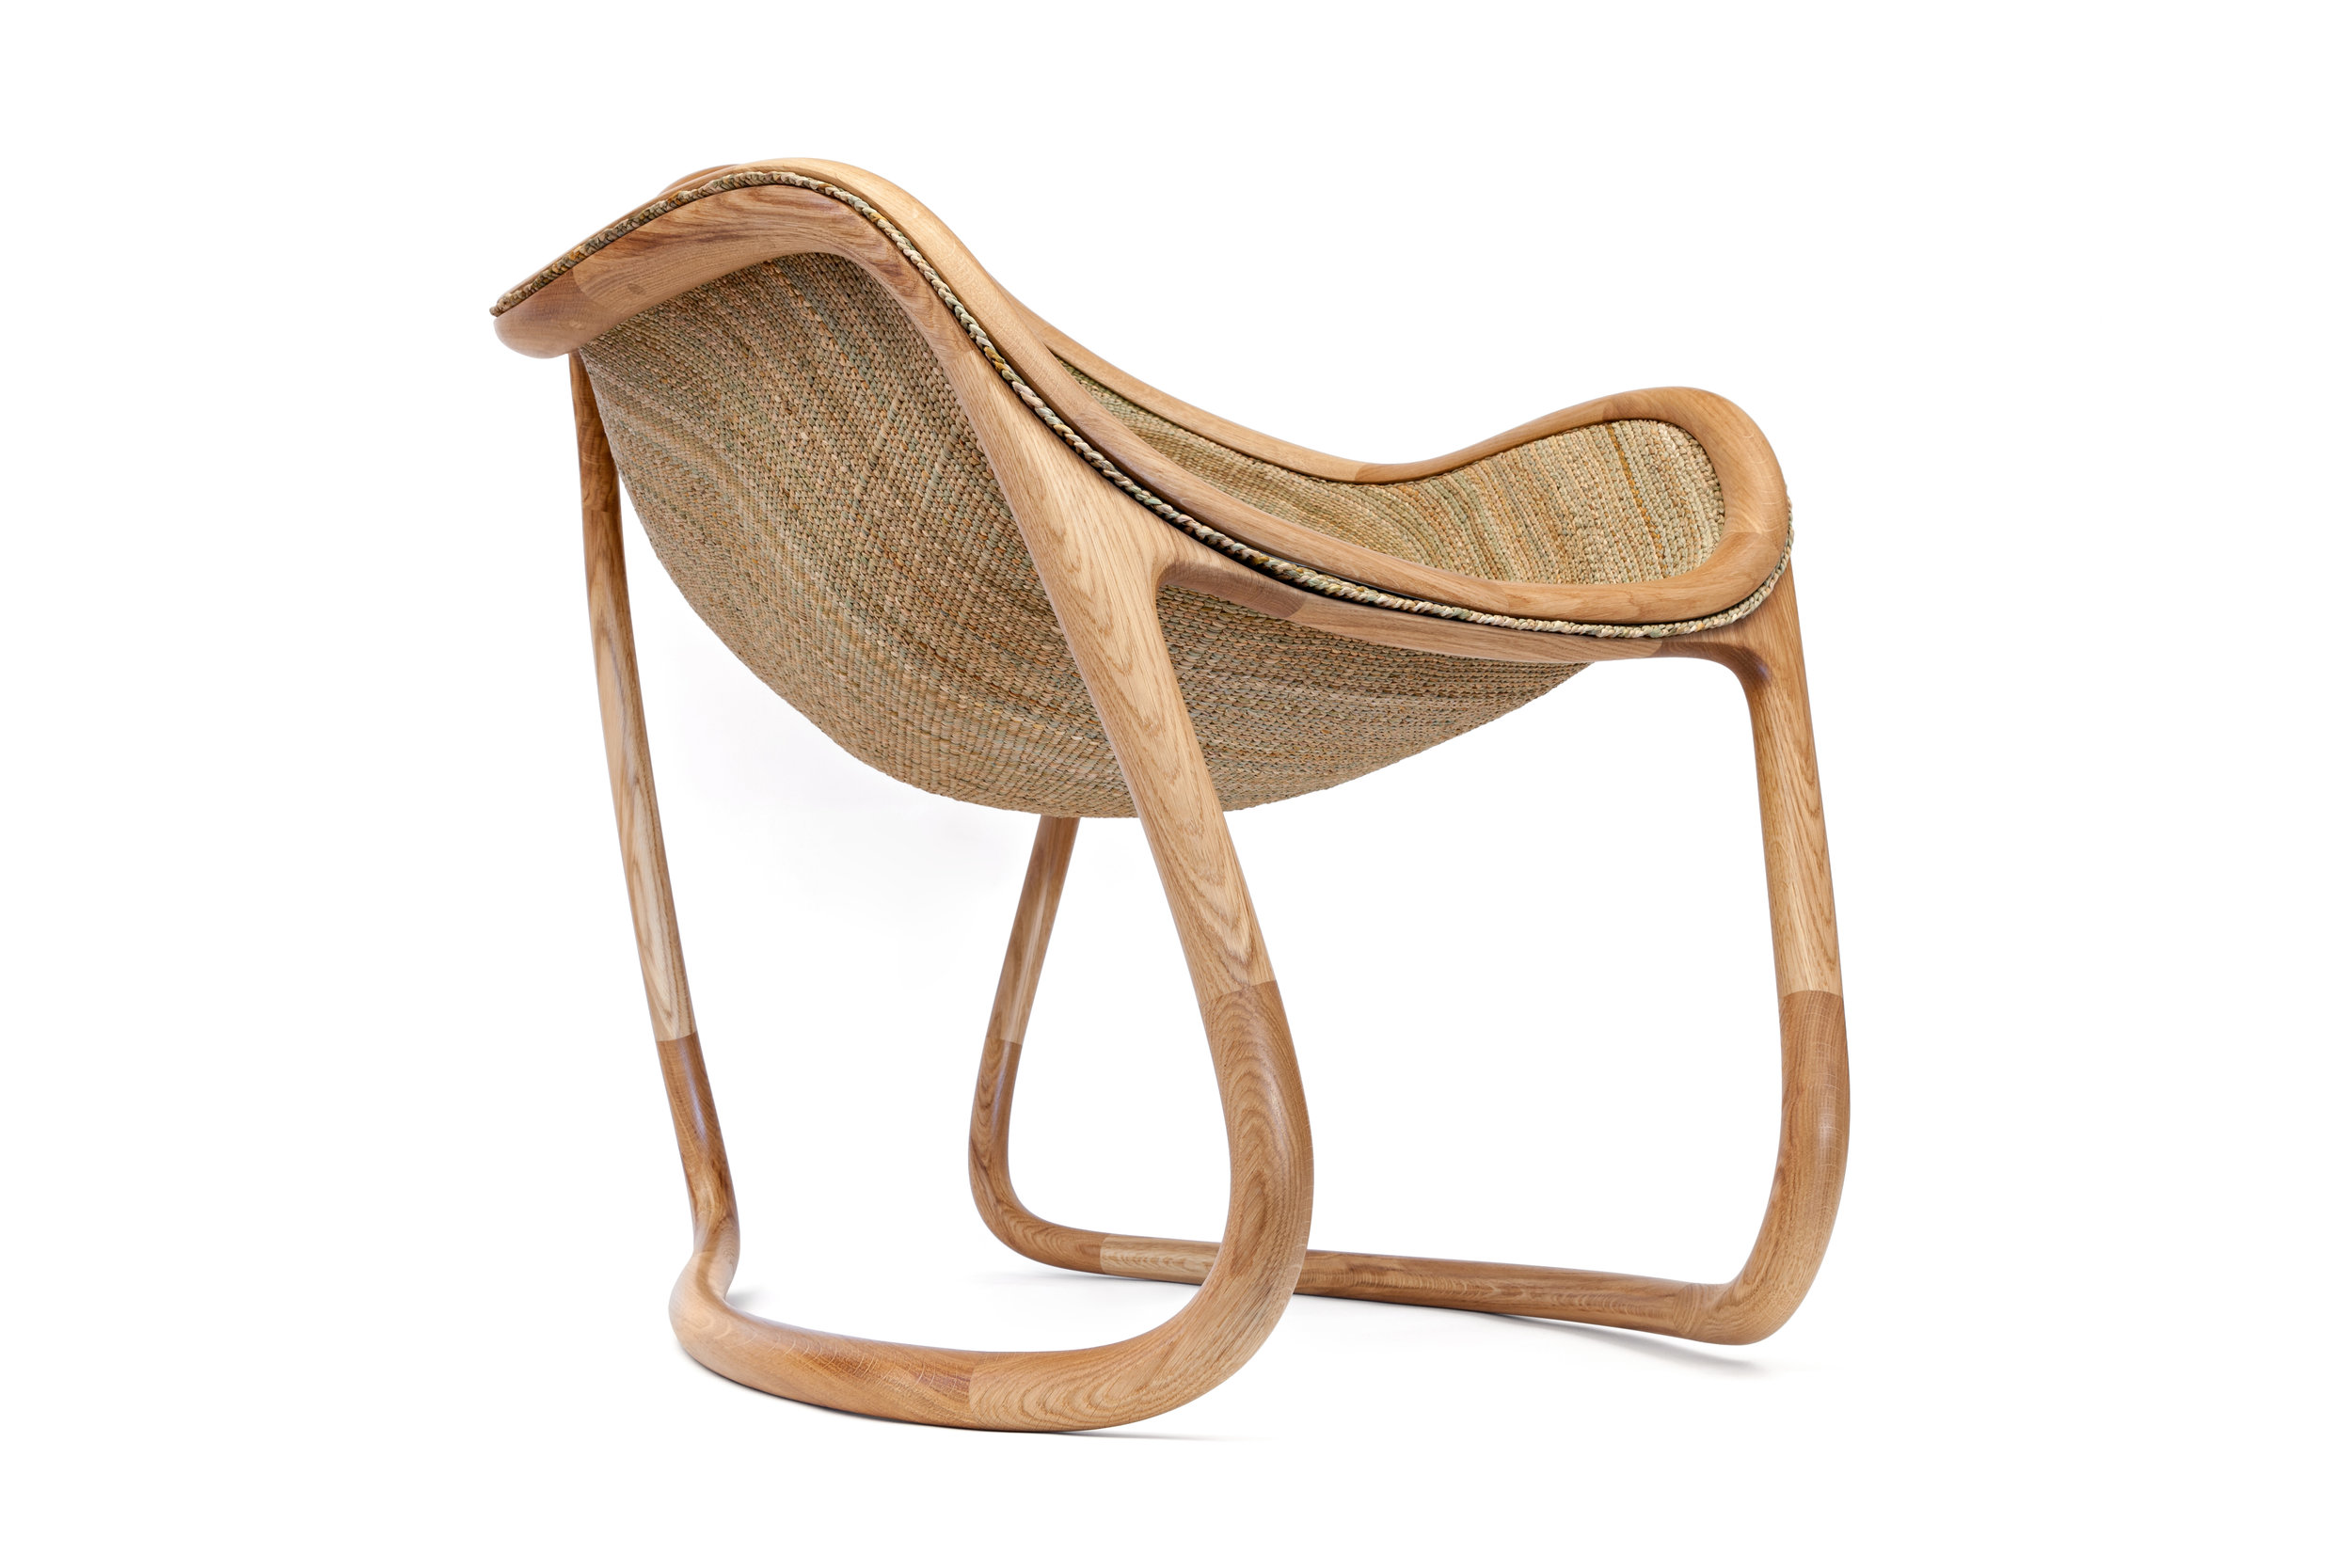 Rush Chair - Side view of chair © Michael Franke